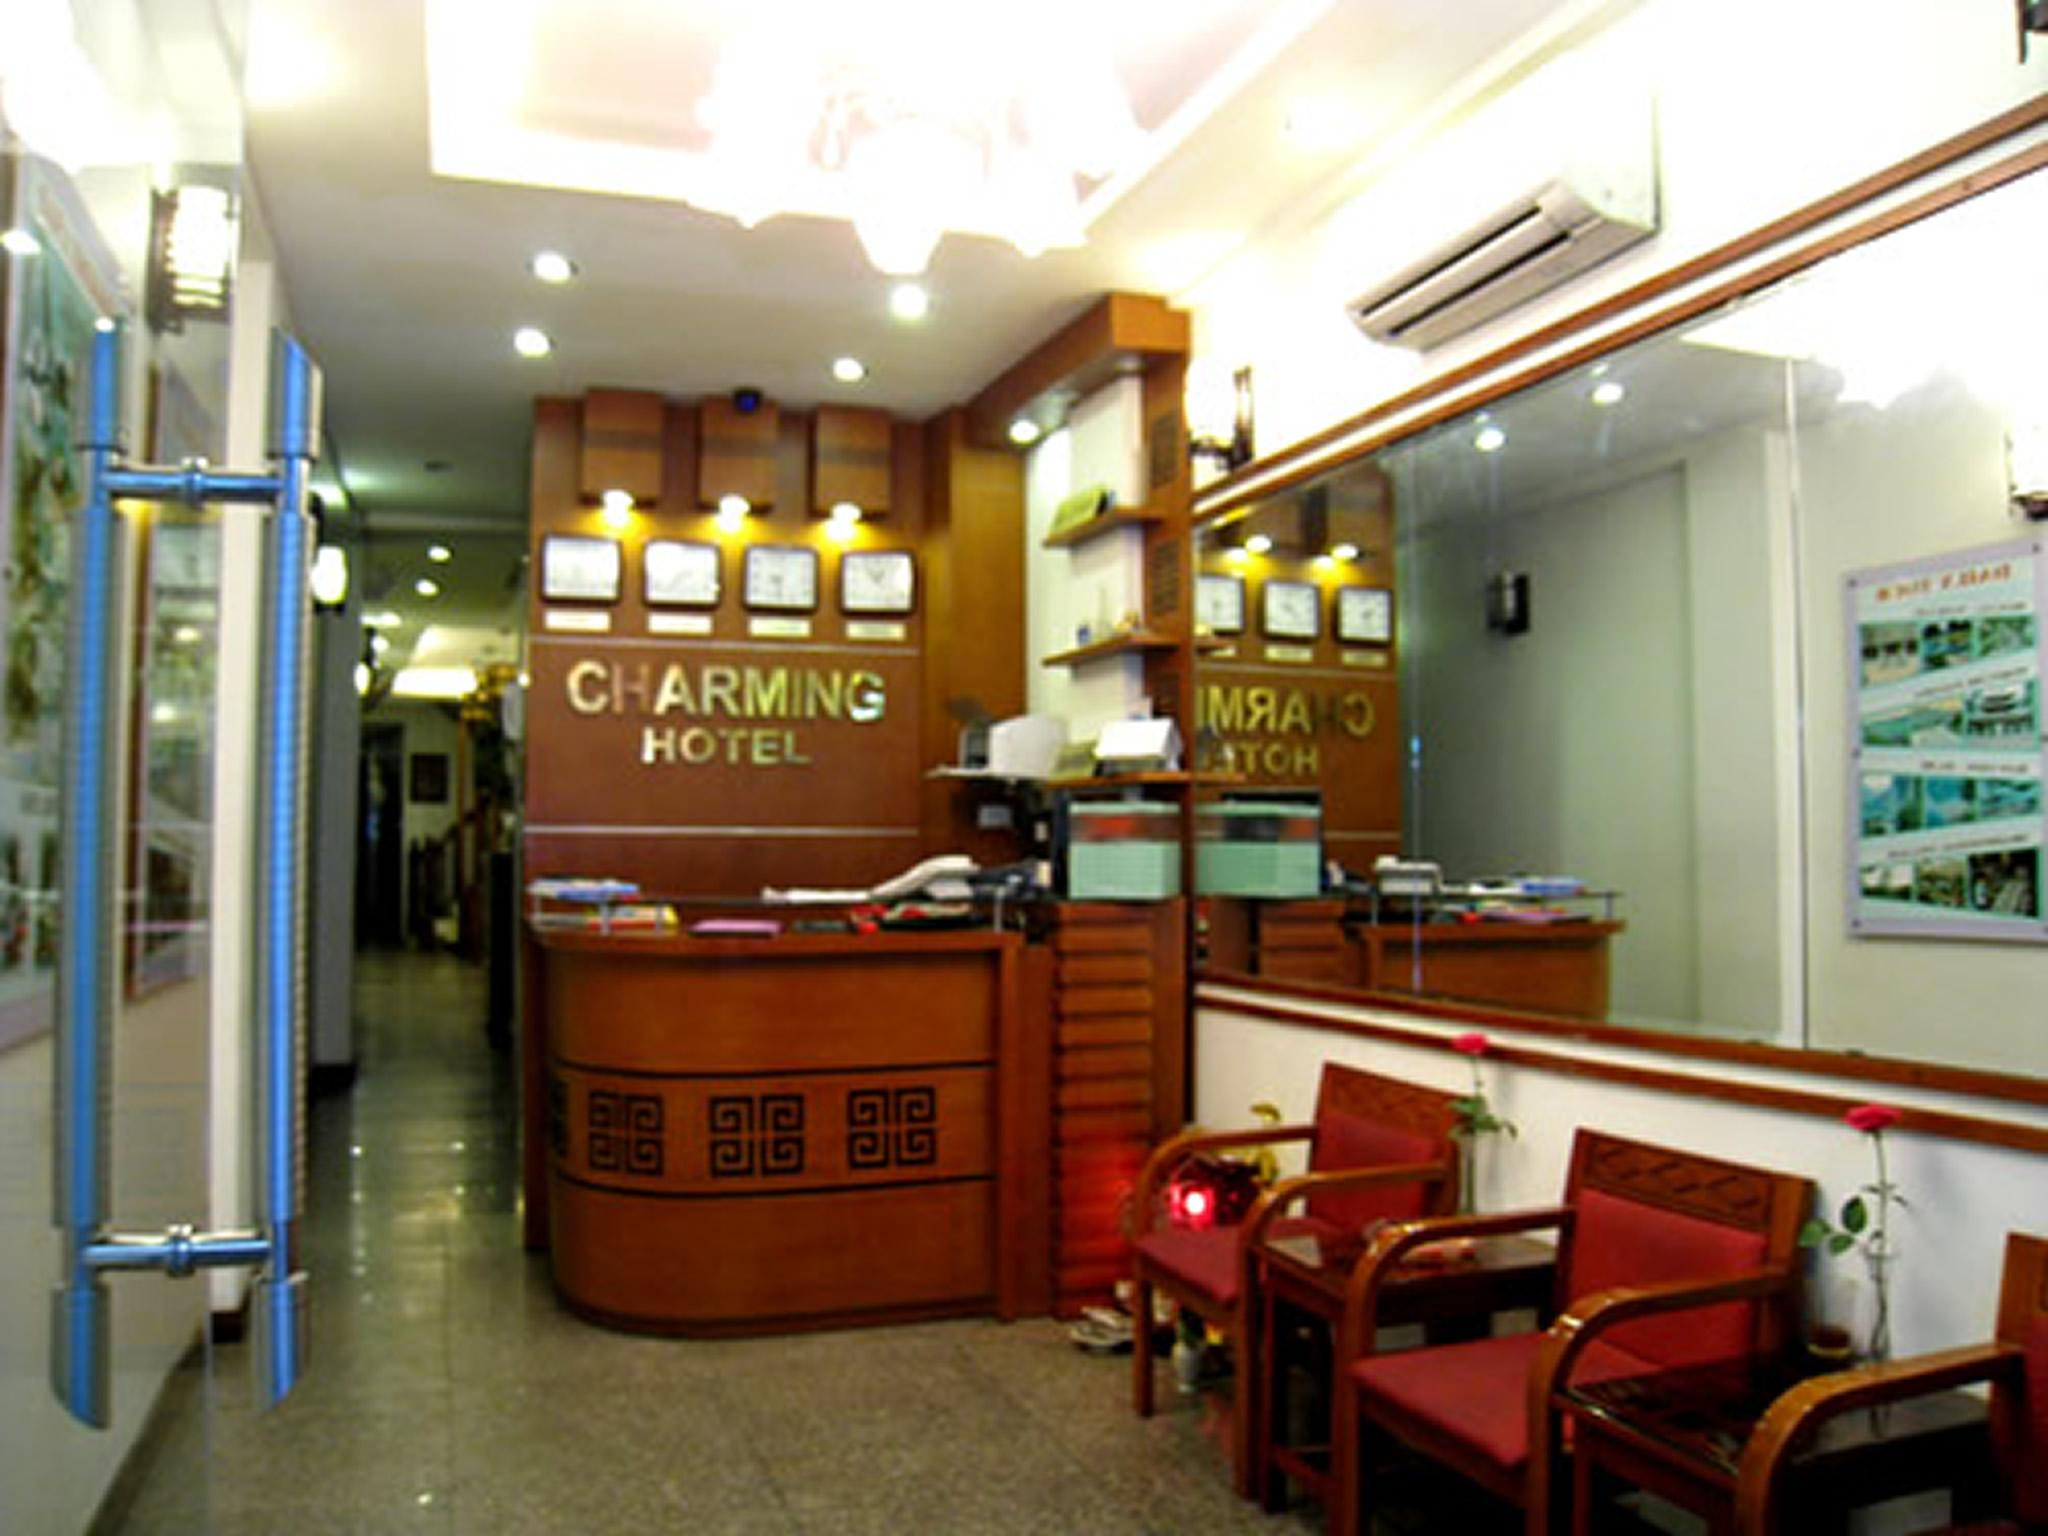 Charming hotel hanoi vietnam great discounted rates for Charming hotels